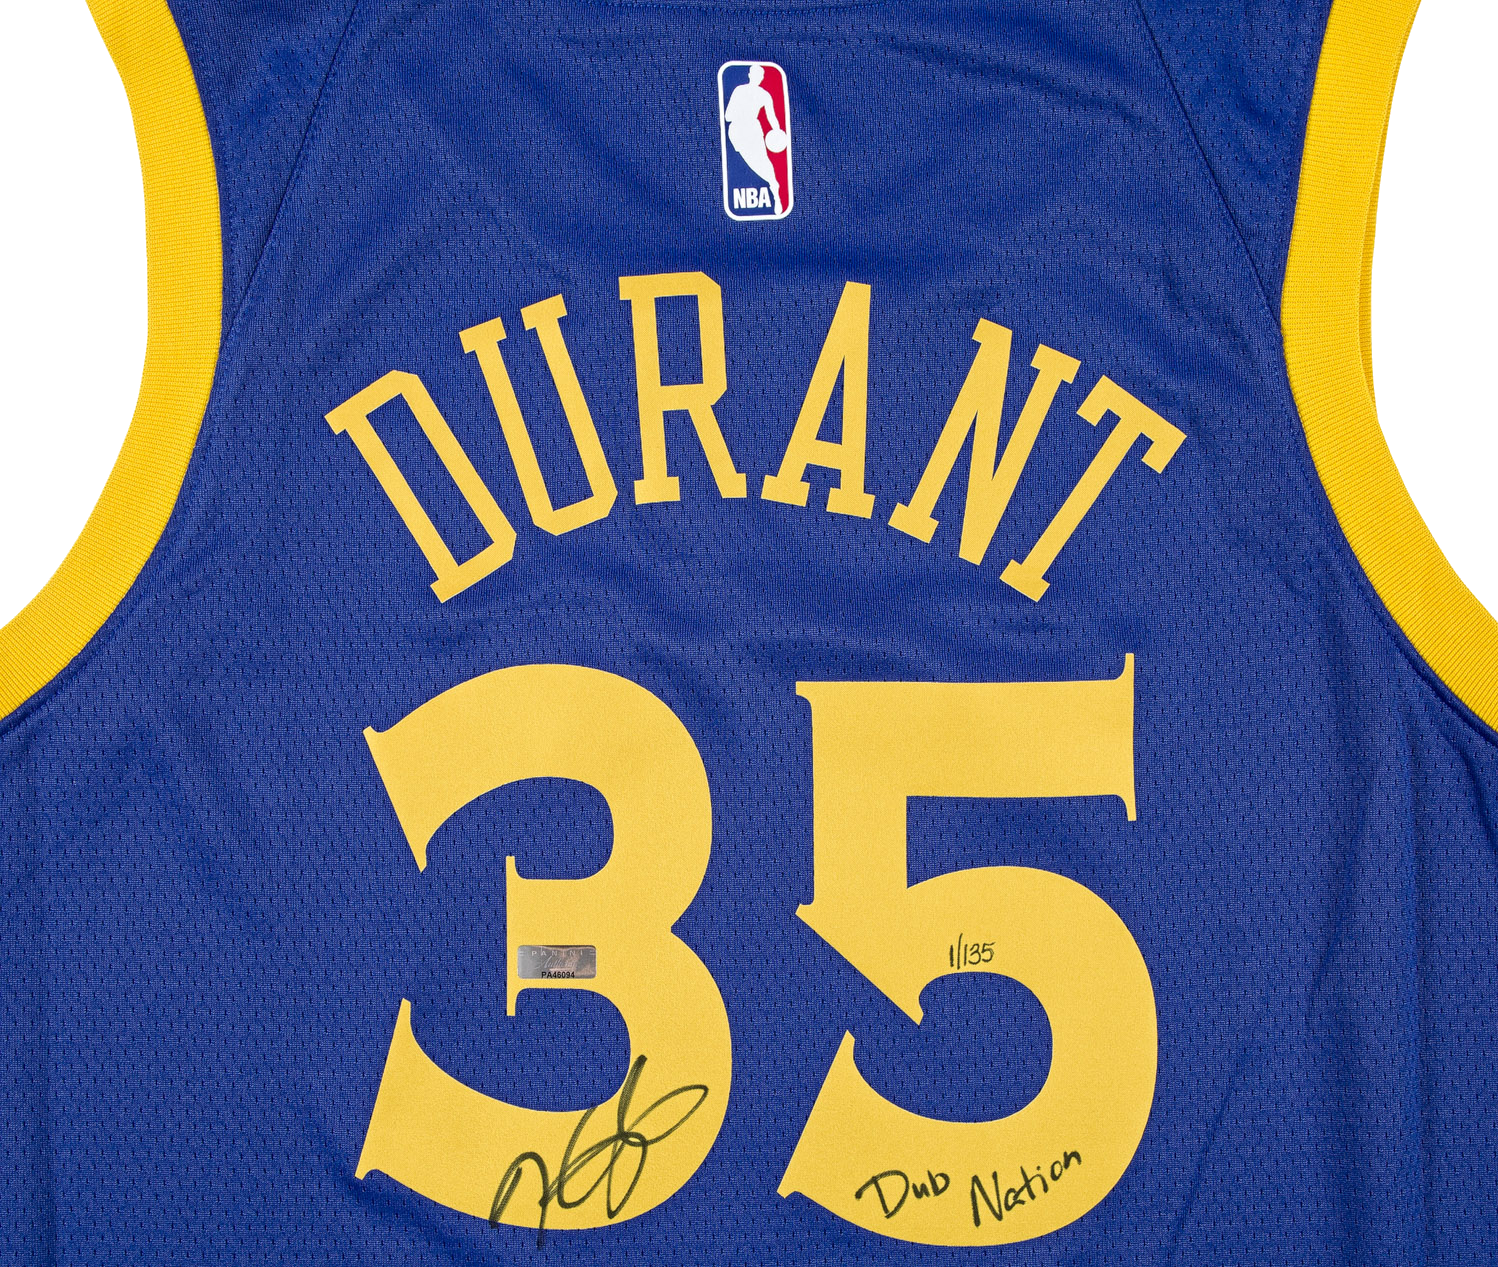 kevin 2. Share. Ídolos   Productos   Deportes   NBA   Golden State Warriors    Kevin Durant playera firmada Blue Golden State Warriors Edición ... ea3aff64158